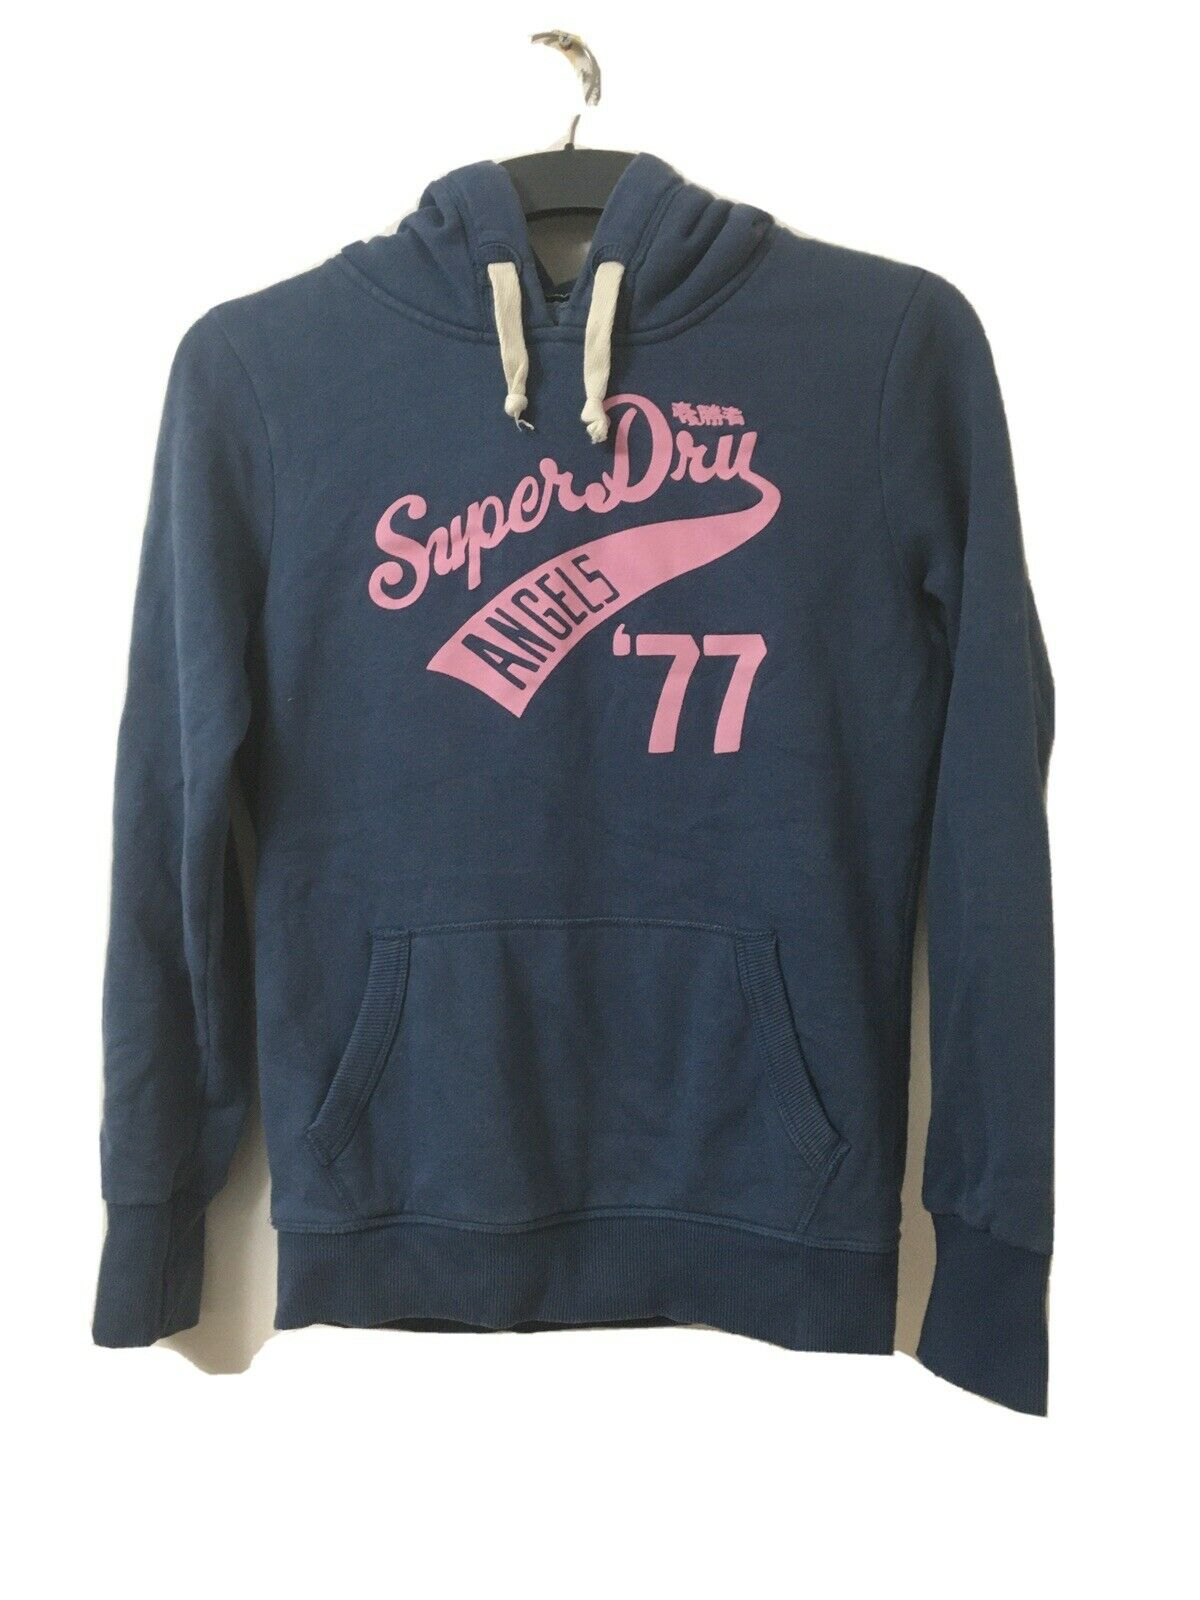 Superdry Womens Grey Blue Cotton/Polyester Hoodie Size M(D626)